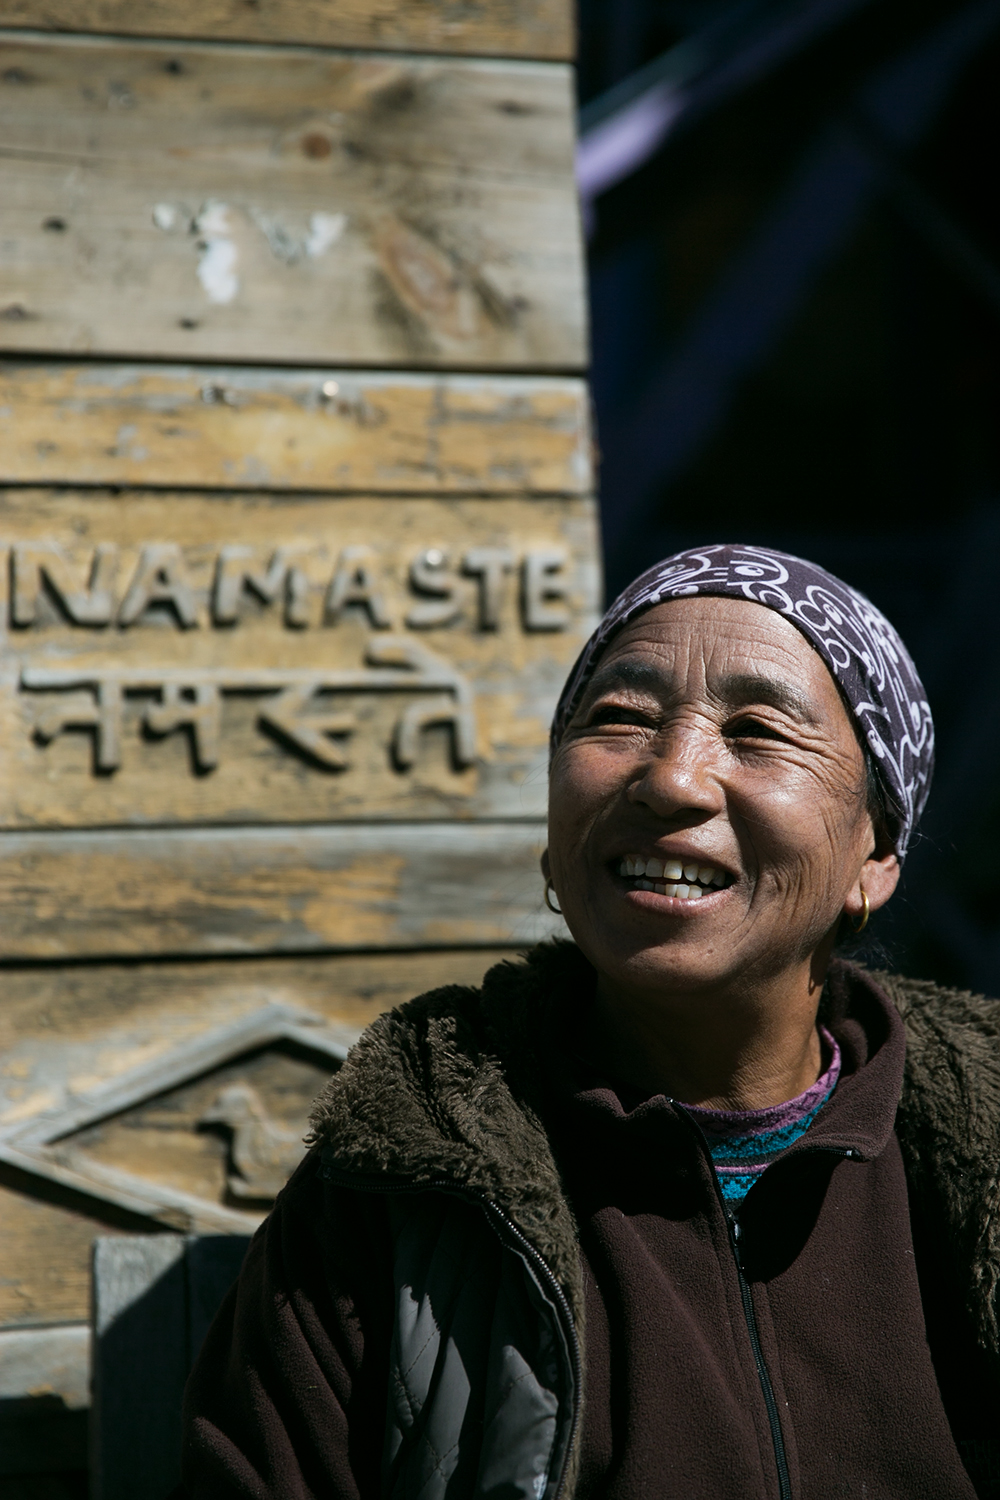 Marsyangdi, Nepal, travel, travel photography, Canon 5D Mark III, photography, Annapurna Circuit, trekking in Nepal, Pokhara, Annapurna Sanctuary, Annapurna I, Himalaya, Himalayan Mountains, Tibet, Prayer Flags, people of Nepal, Mustang, Manaslu, 8,000 meter mountains, Manang, Muktinath, Dhaulagiri,